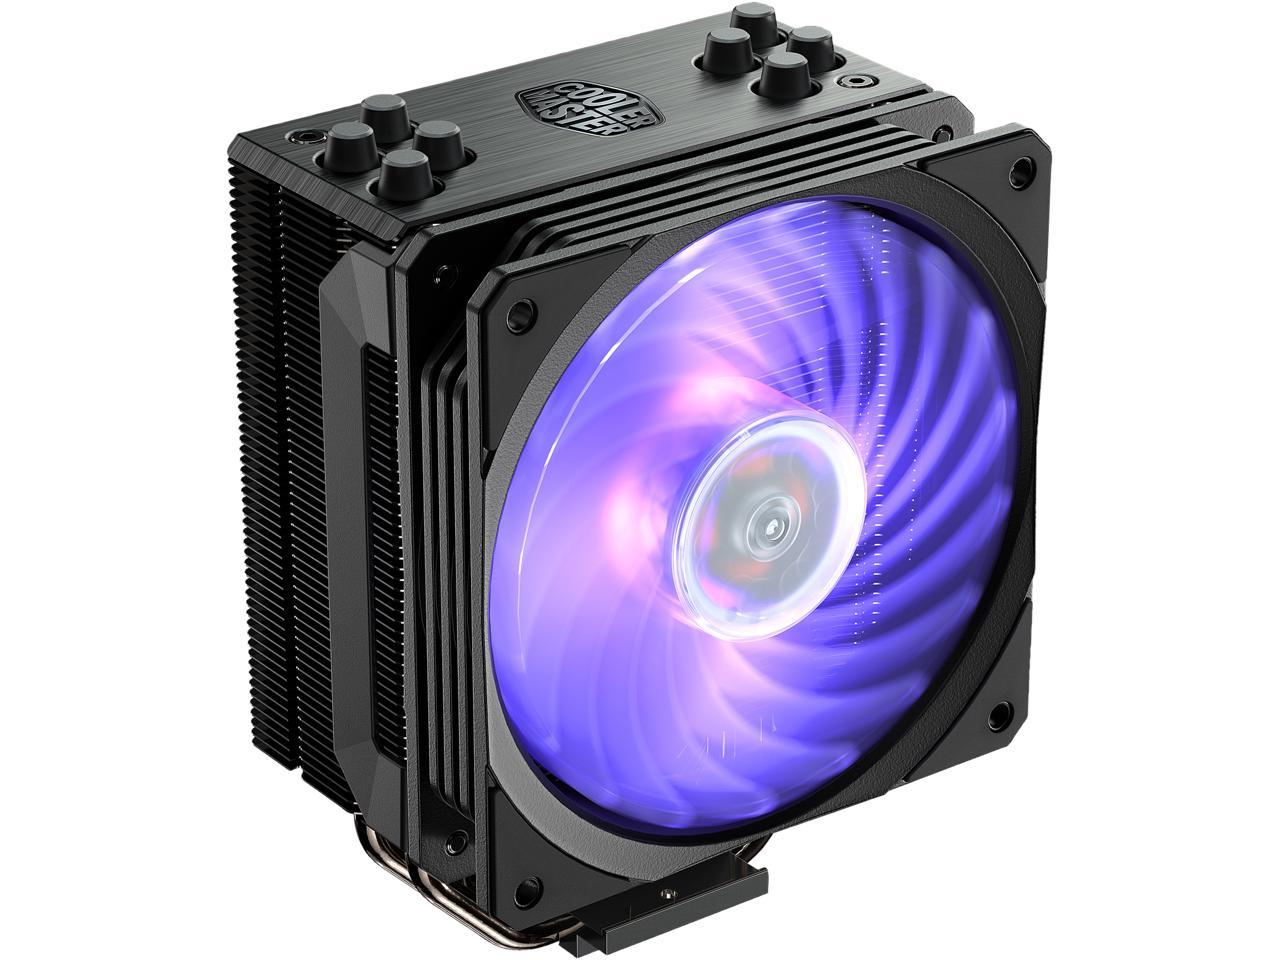 Cooler Master Hyper 212 RGB Black Edition CPU Air Cooler RR-212S-20PC-R1